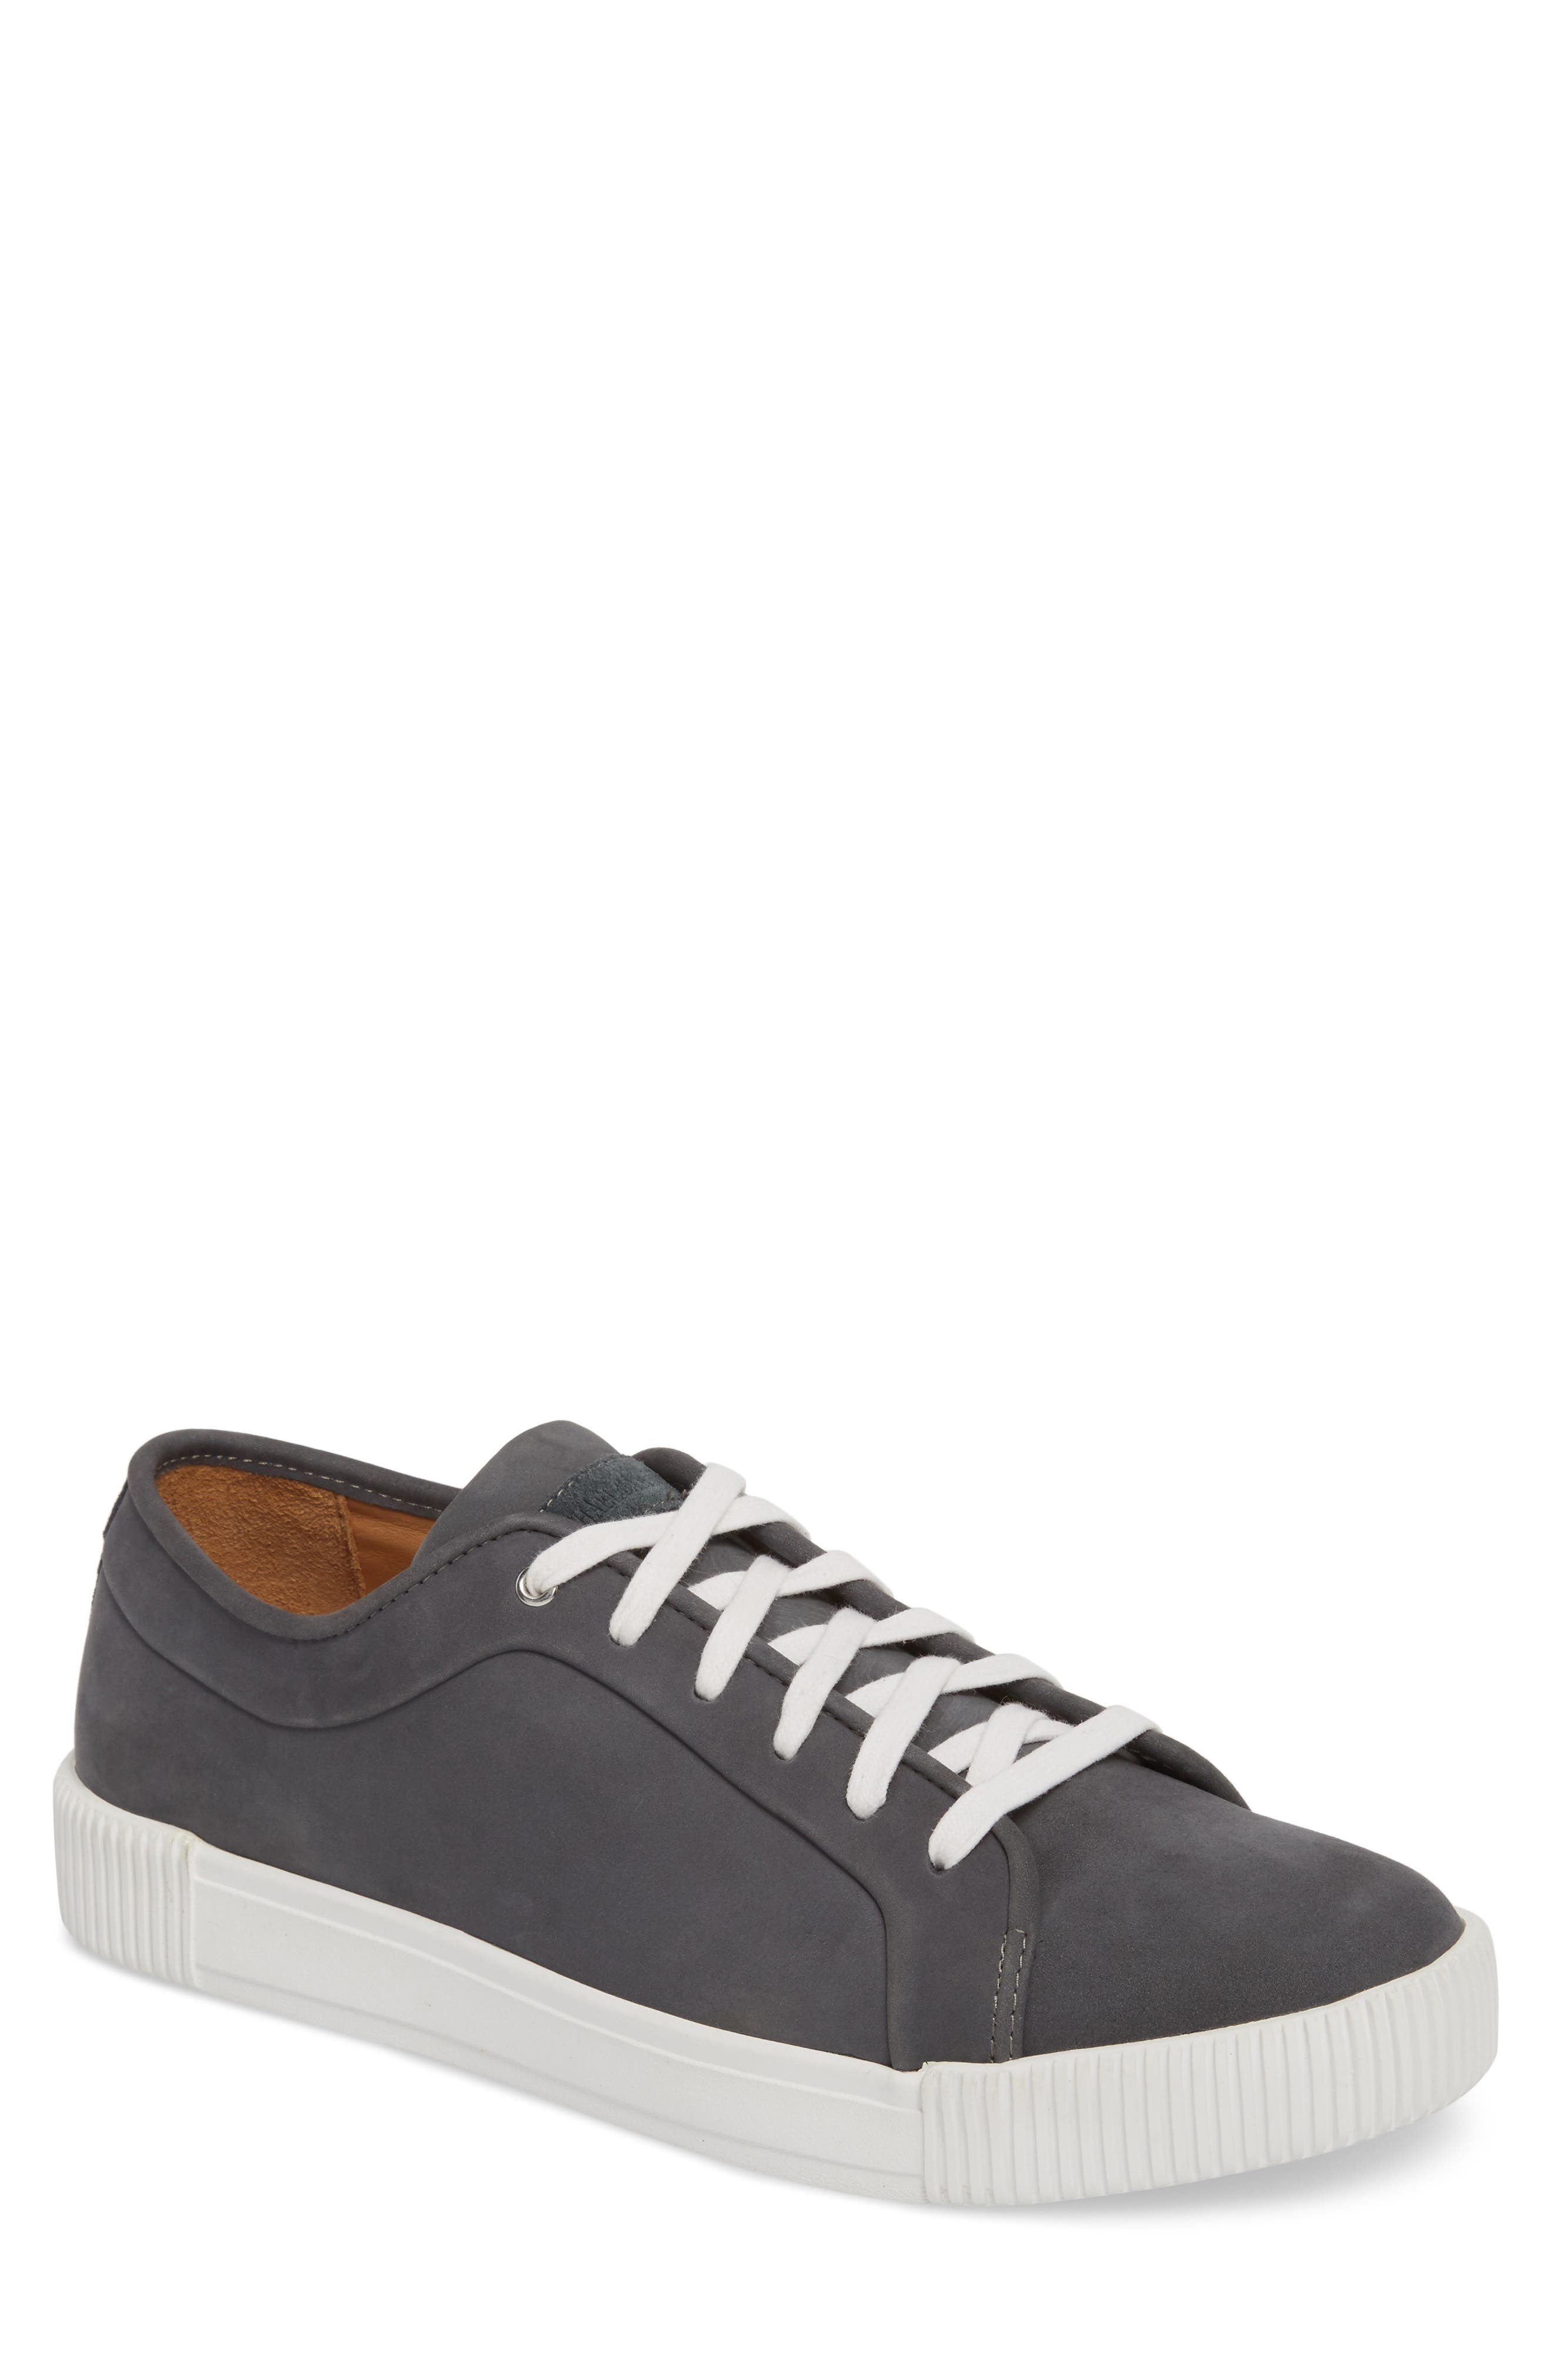 Lyons Low Top Sneaker,                             Main thumbnail 1, color,                             020